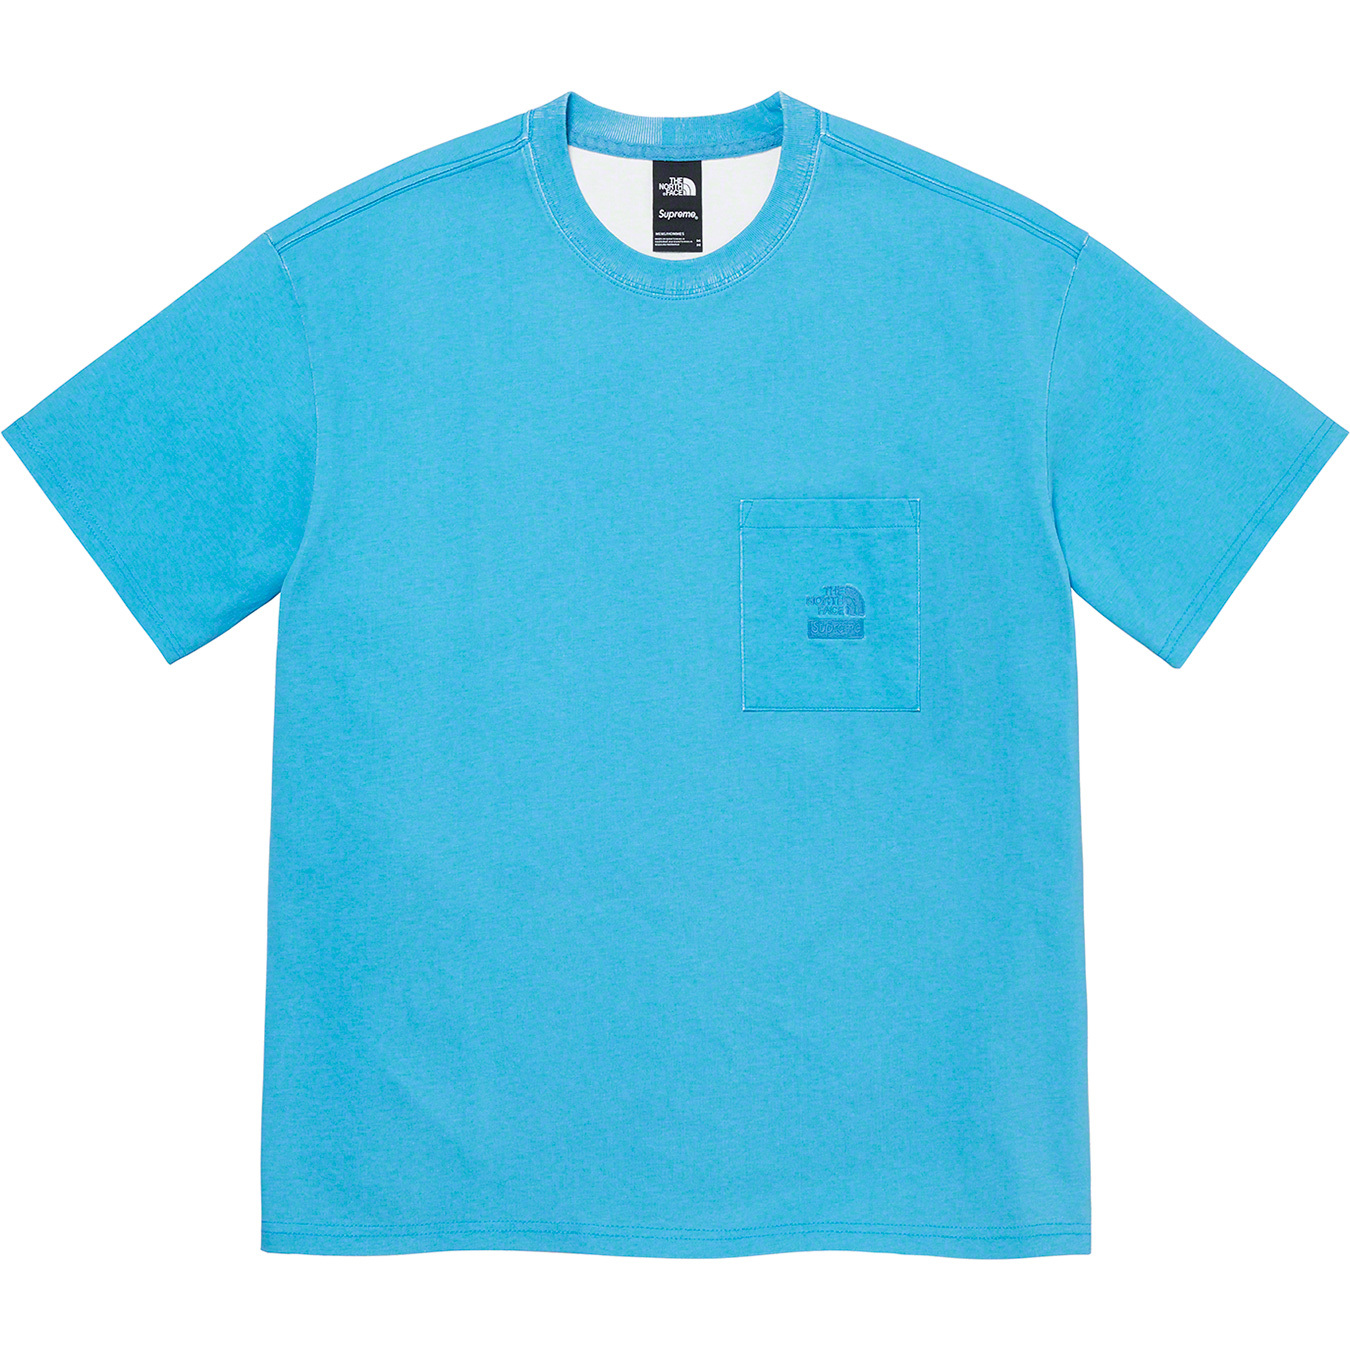 supreme-the-north-face-summit-series-outer-tape-seam-collection-release-21ss-20210529-week14-pigment-printed-pocket-tee